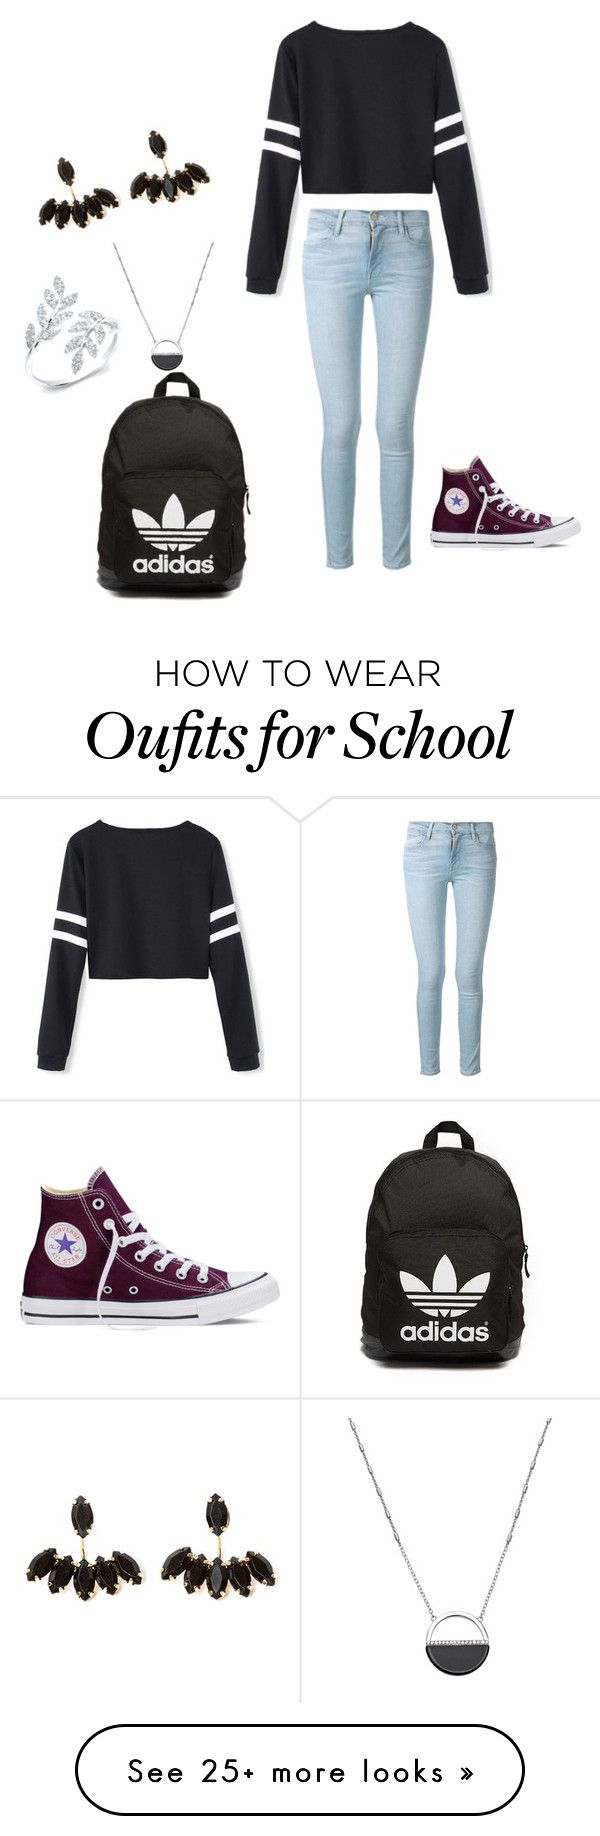 """""""School"""" by cmk04 on Polyvore featuring Frame Denim, Converse, adidas Originals, White House Black Market, women's clothing, women's fashion, women, female, woman and misses"""